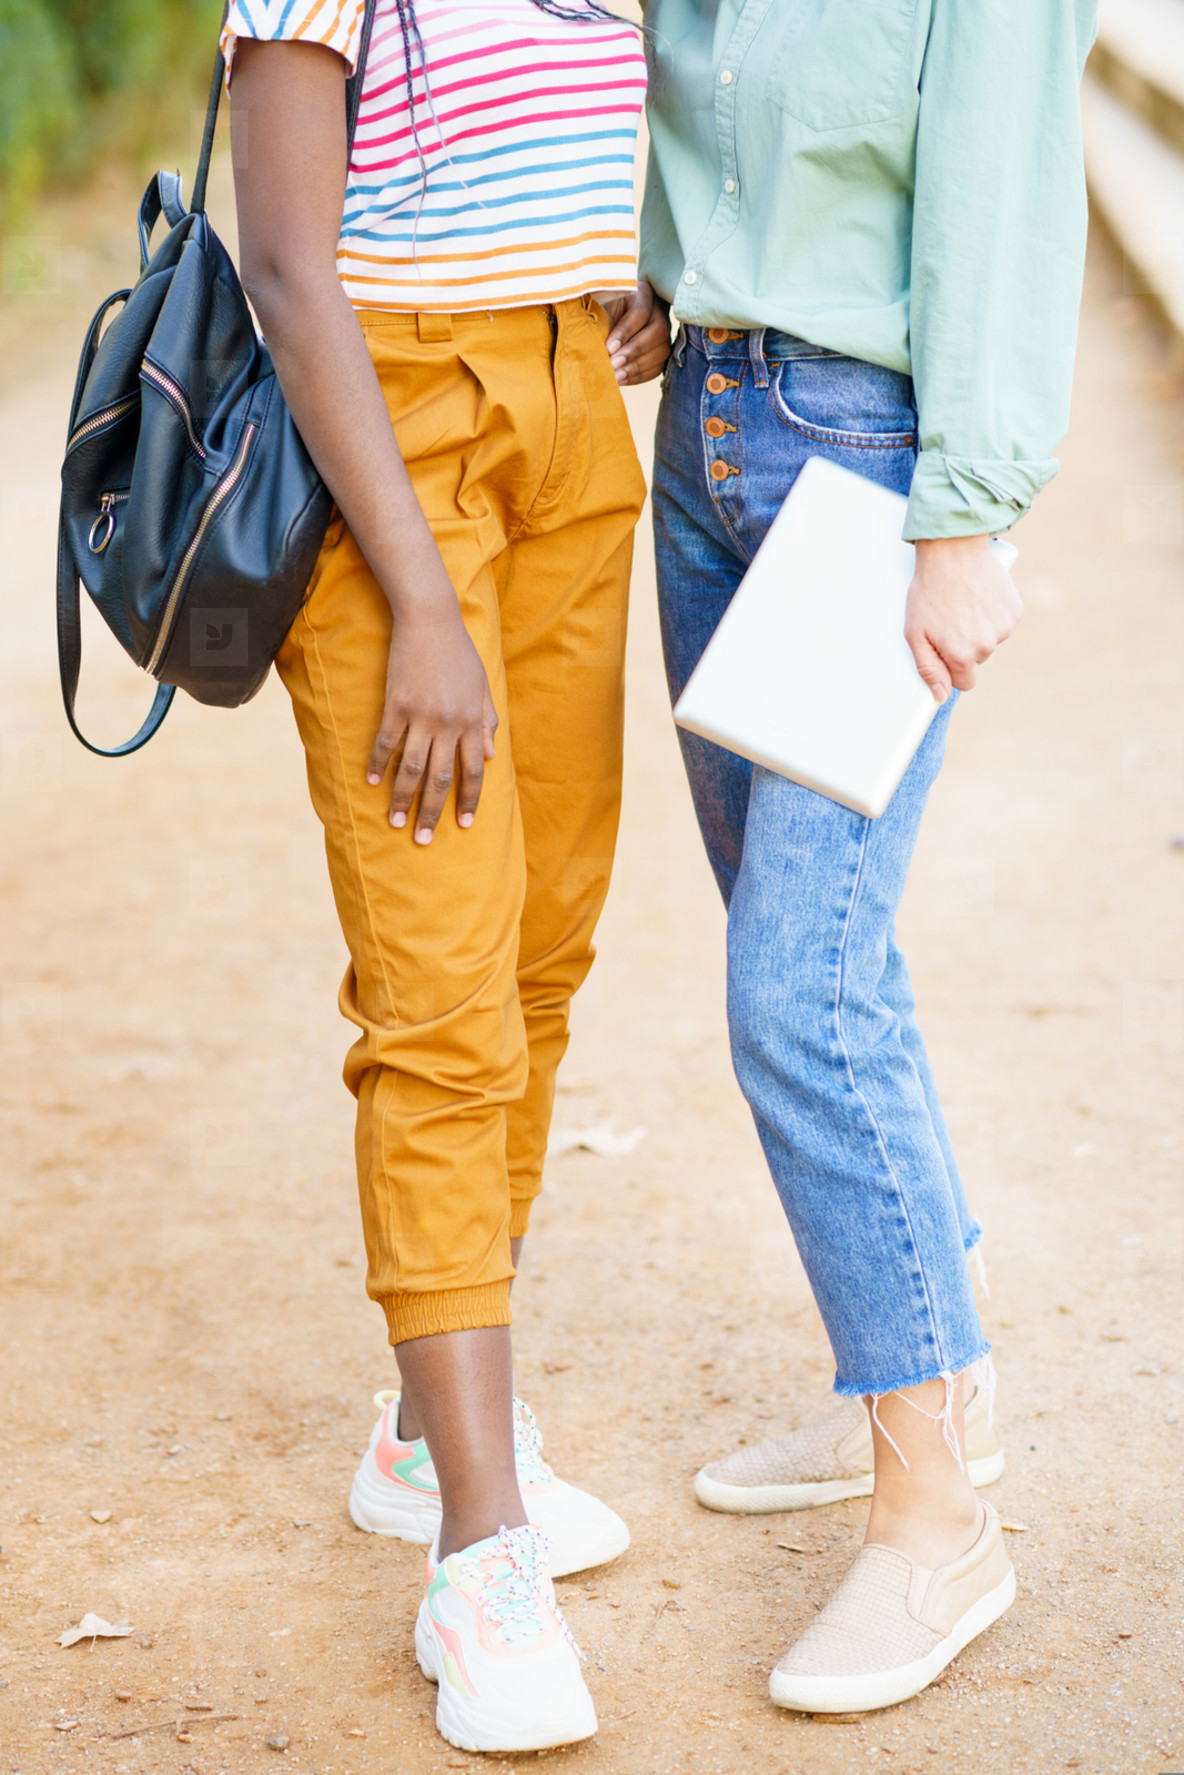 Two unrecognizable multiethnic girls posing together with colorful casual clothing